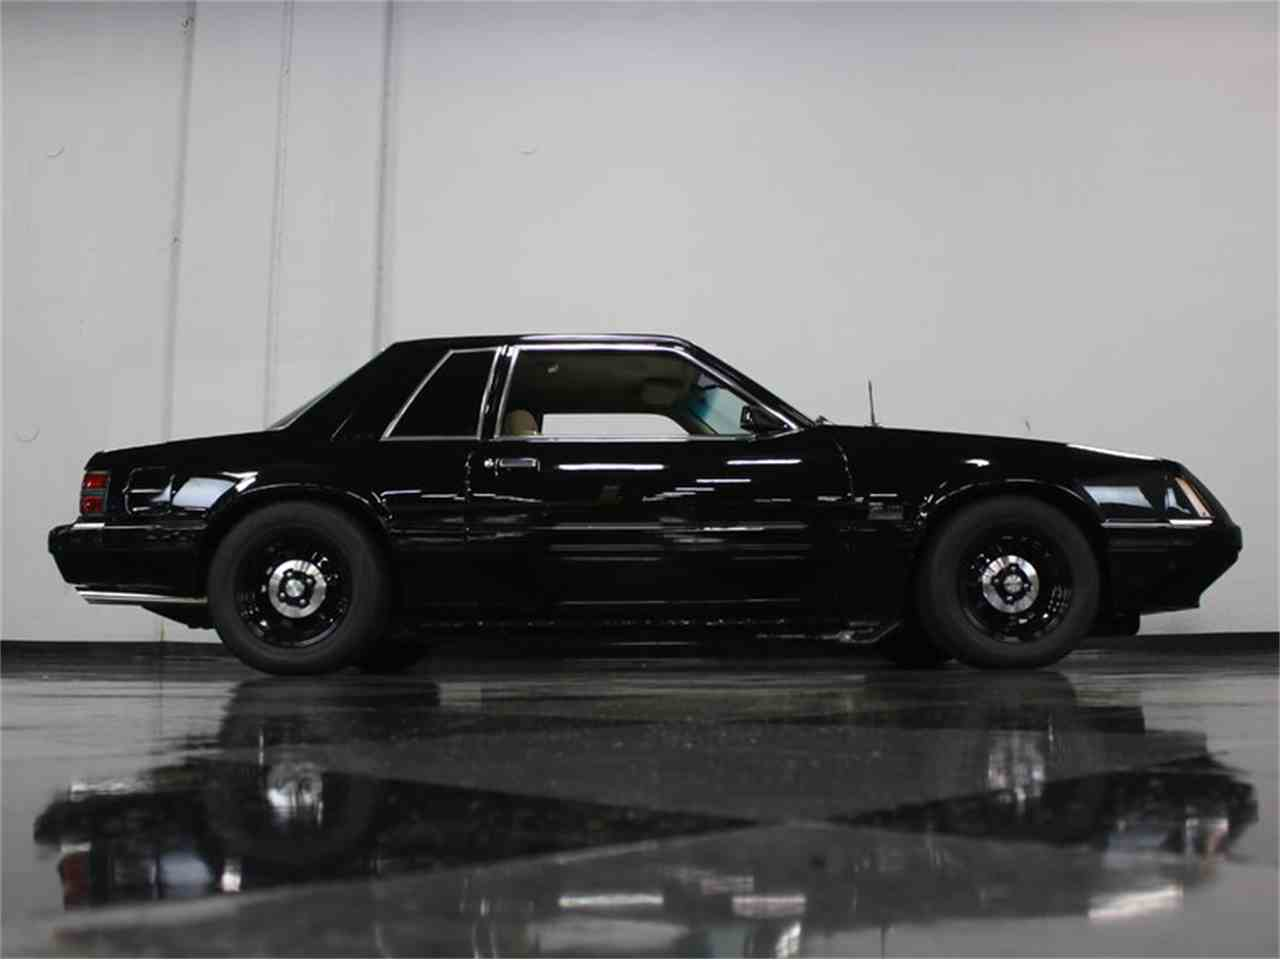 Large Picture of 1986 Ford Mustang SSP Interceptor - $24,995.00 Offered by Streetside Classics - Dallas / Fort Worth - JZNT